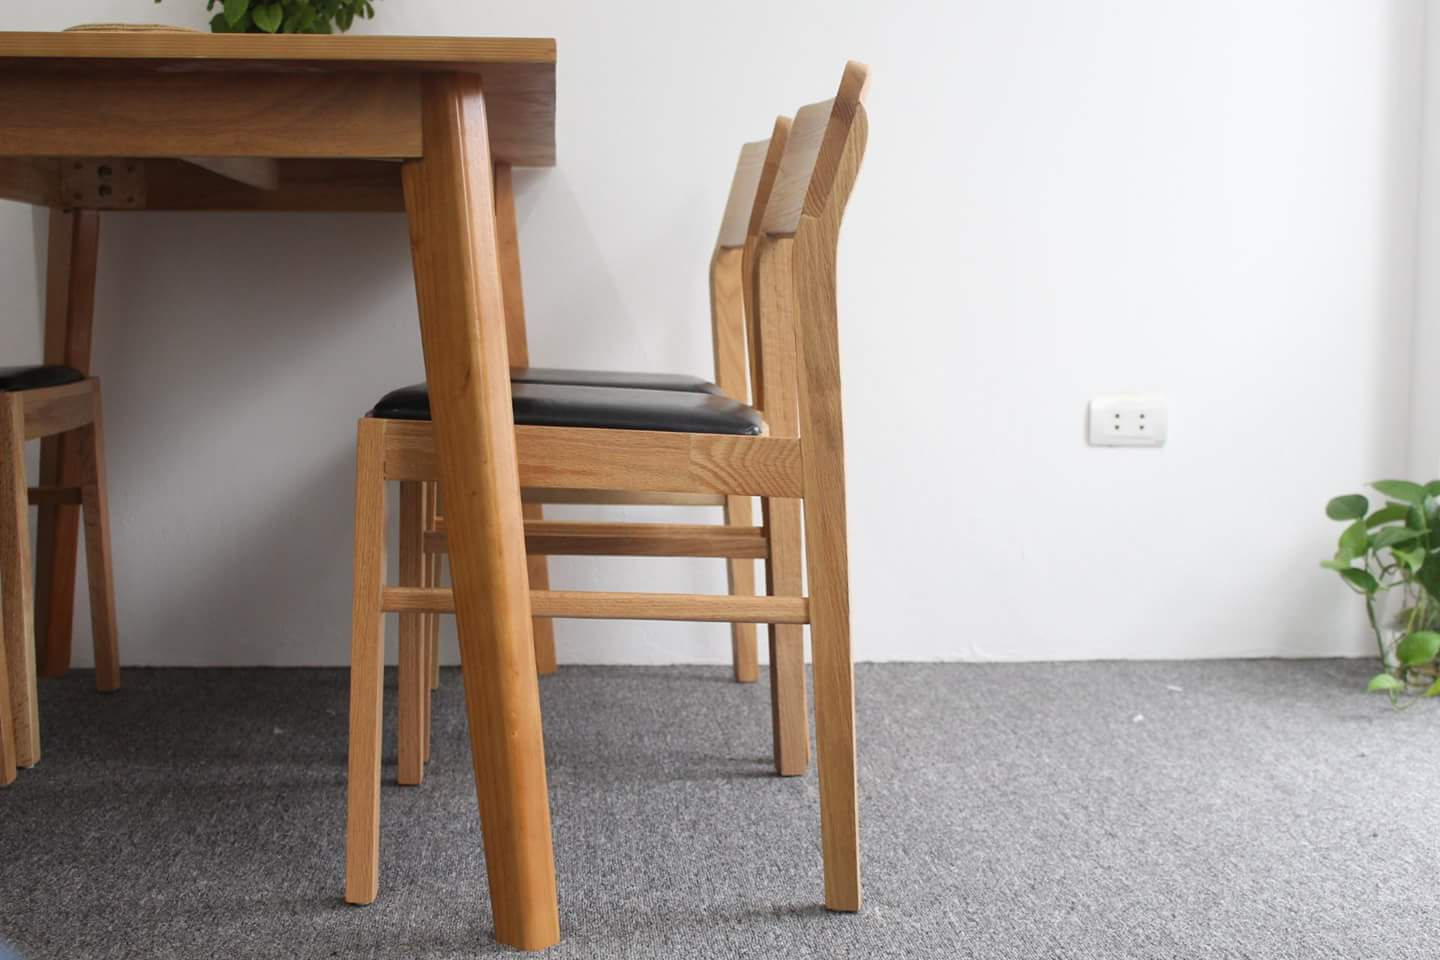 Comtemporary dinning furniture set